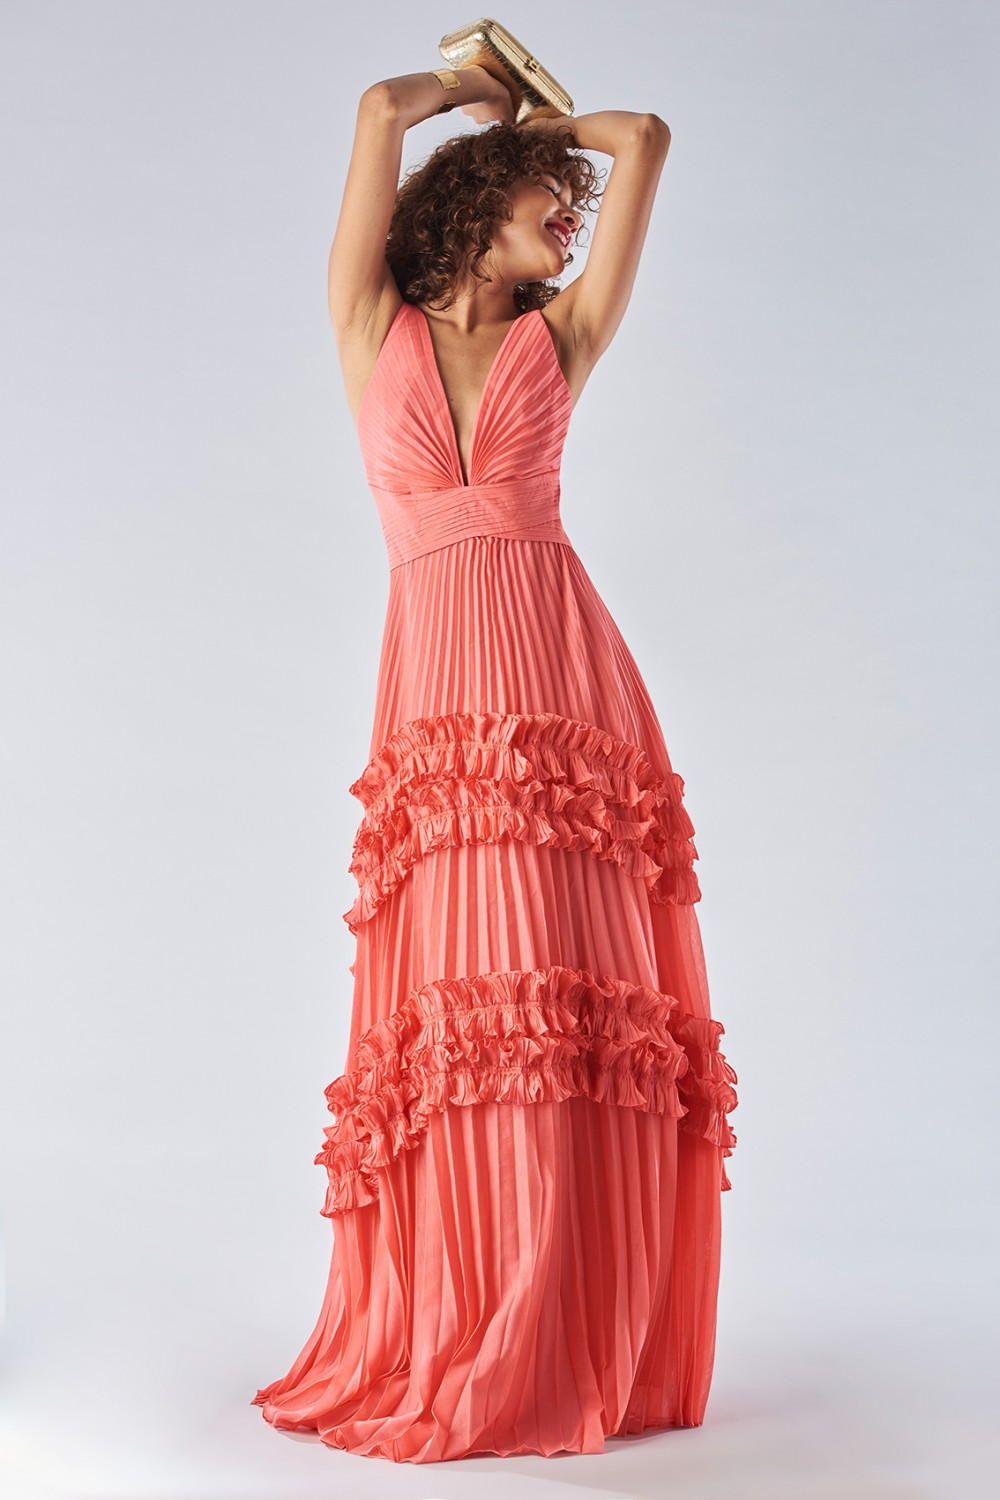 Strawberry dress with ruffles